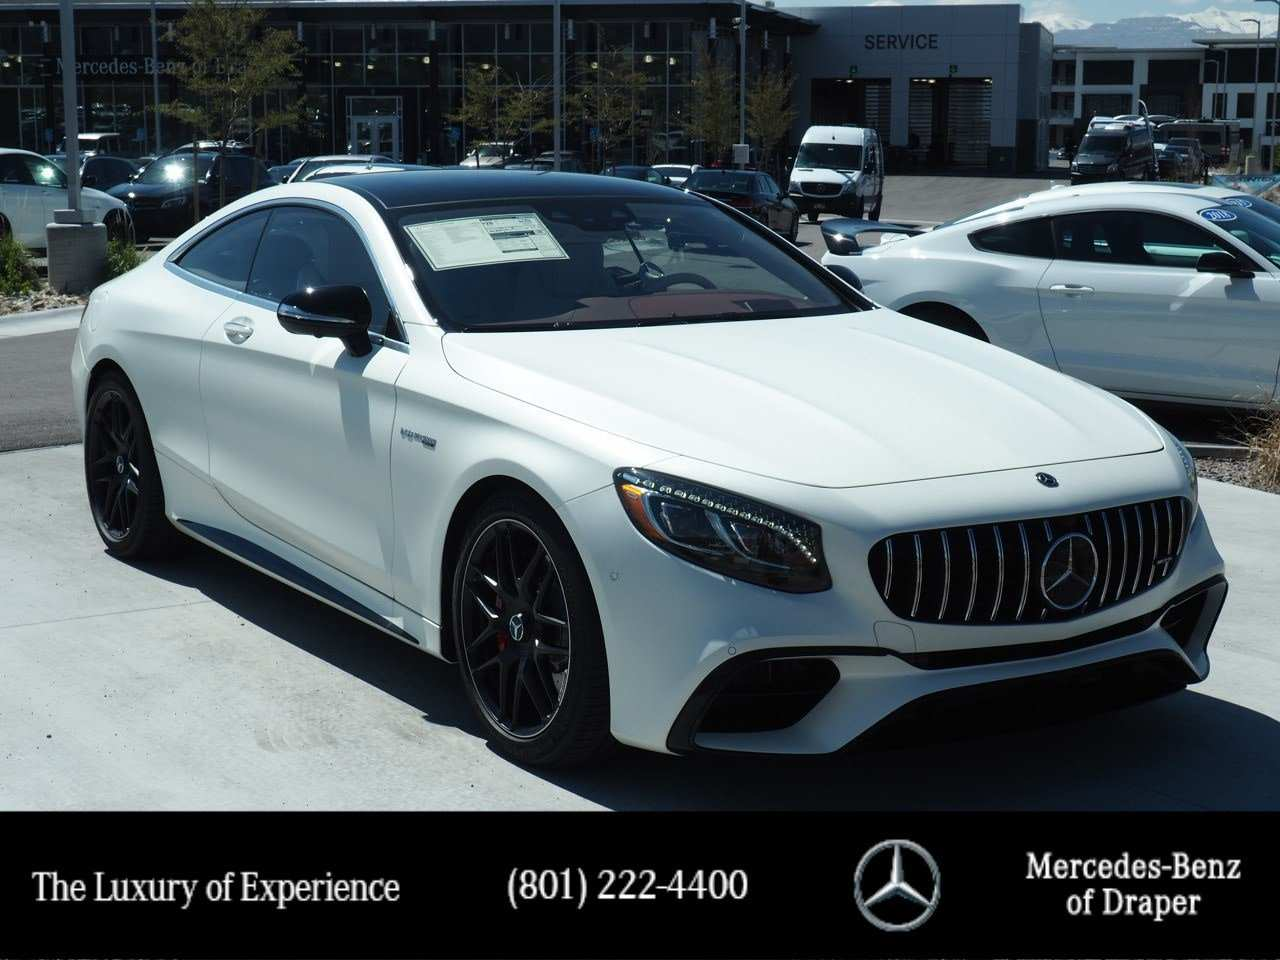 19 New 2019 Mercedes Benz S Class Style